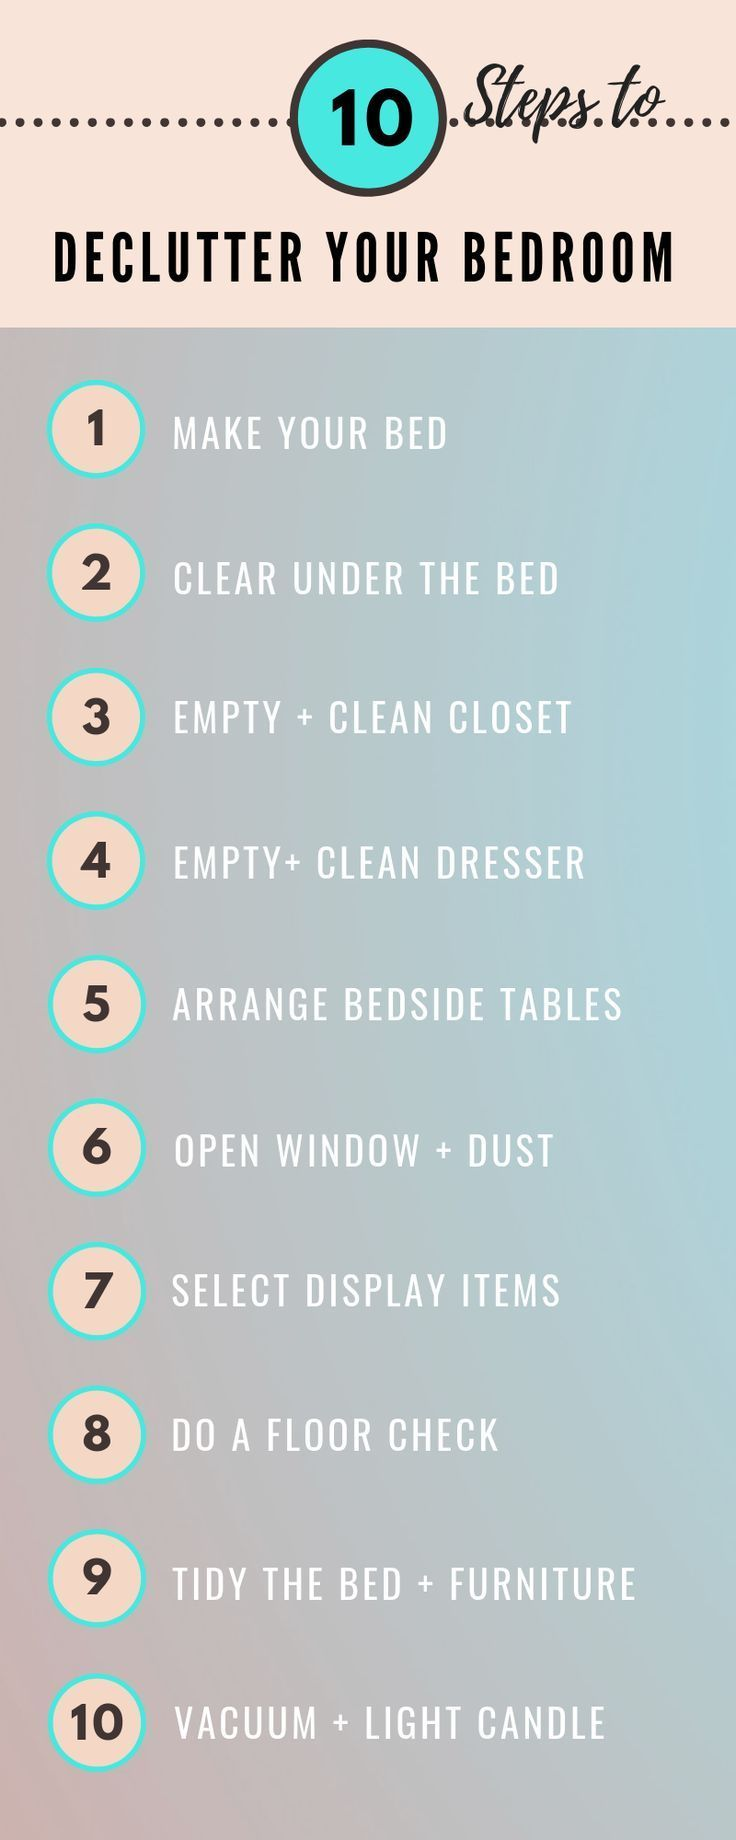 The best way to decode your bedroom in 10 steps